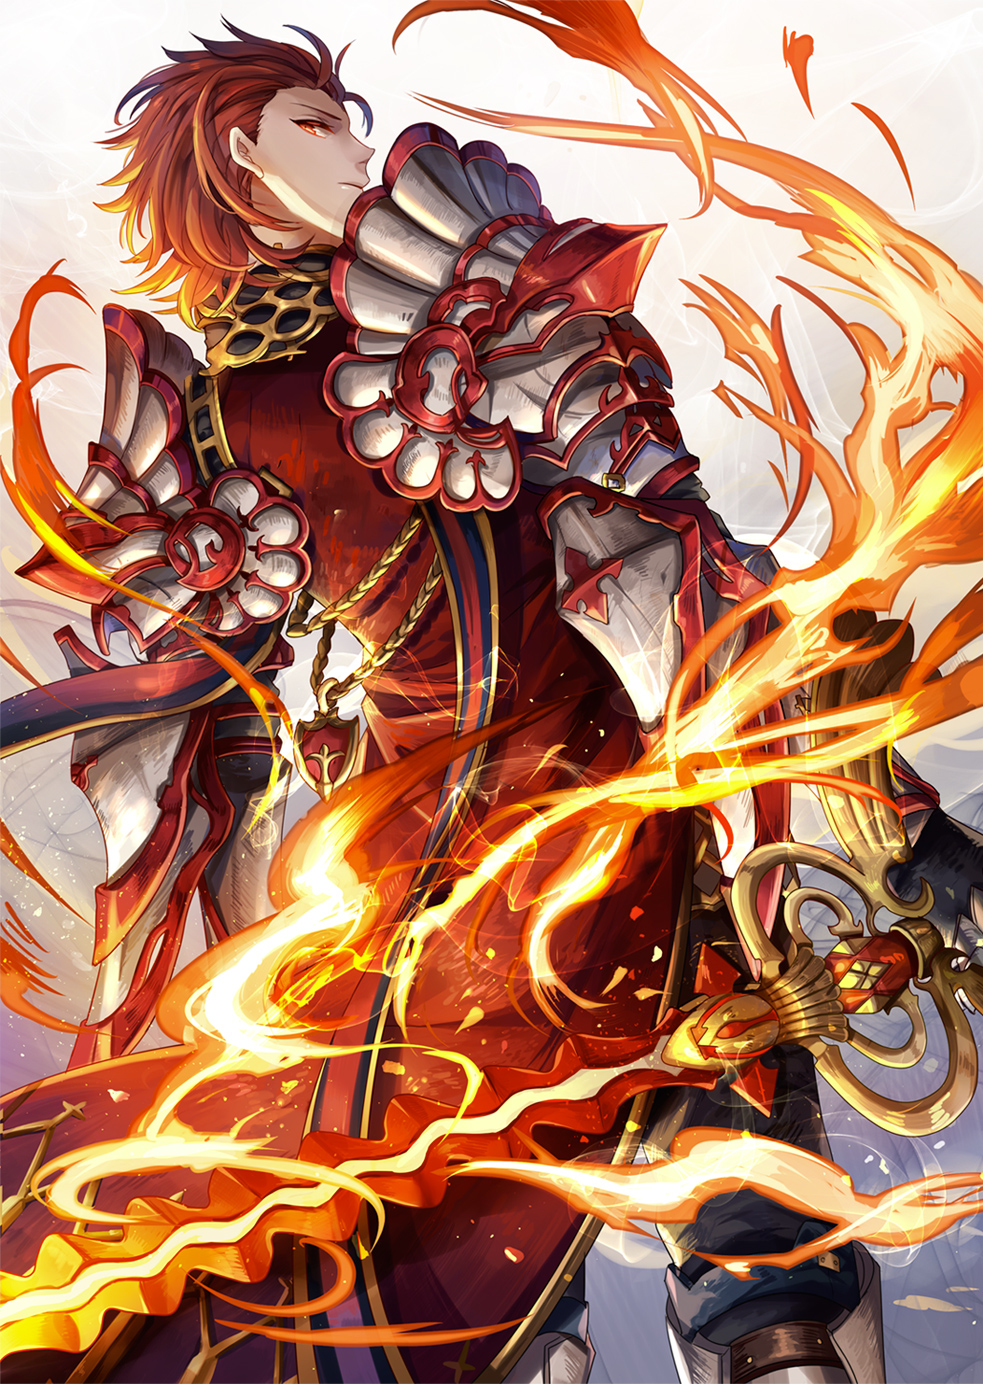 Percival Granblue Fantasy Zerochan Anime Image Board